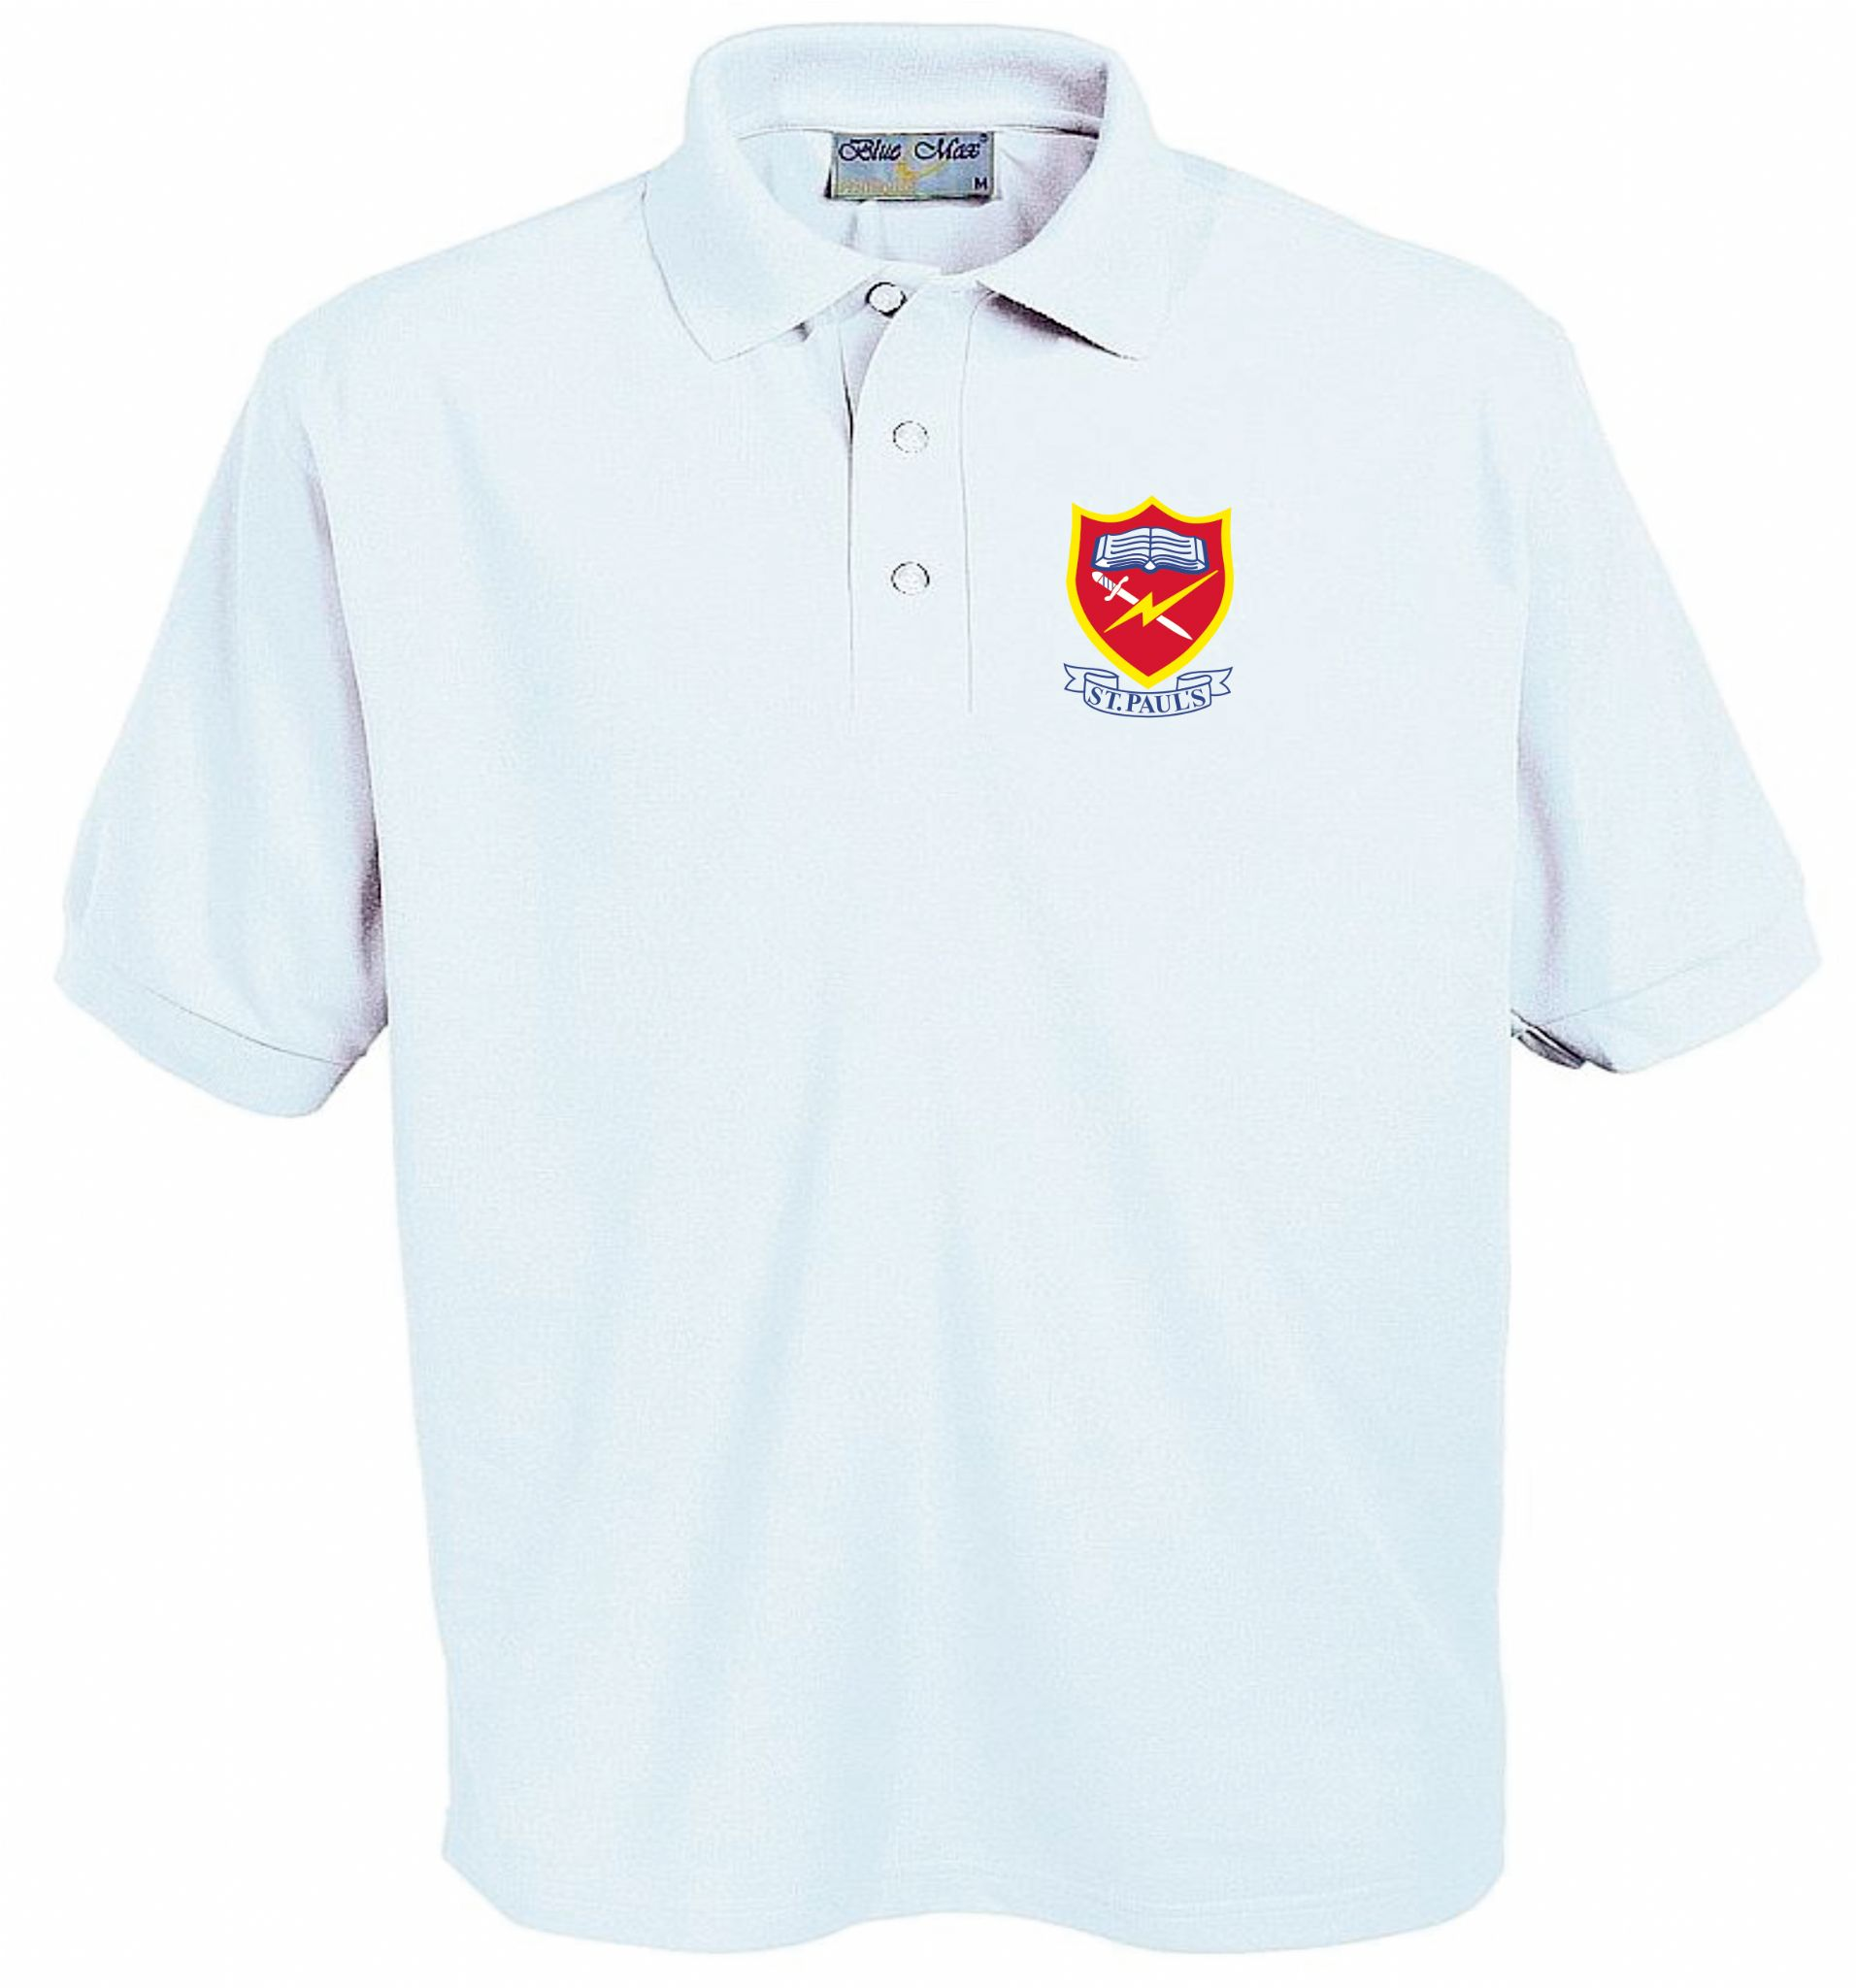 St Paul S Embroidered Polo Shirts